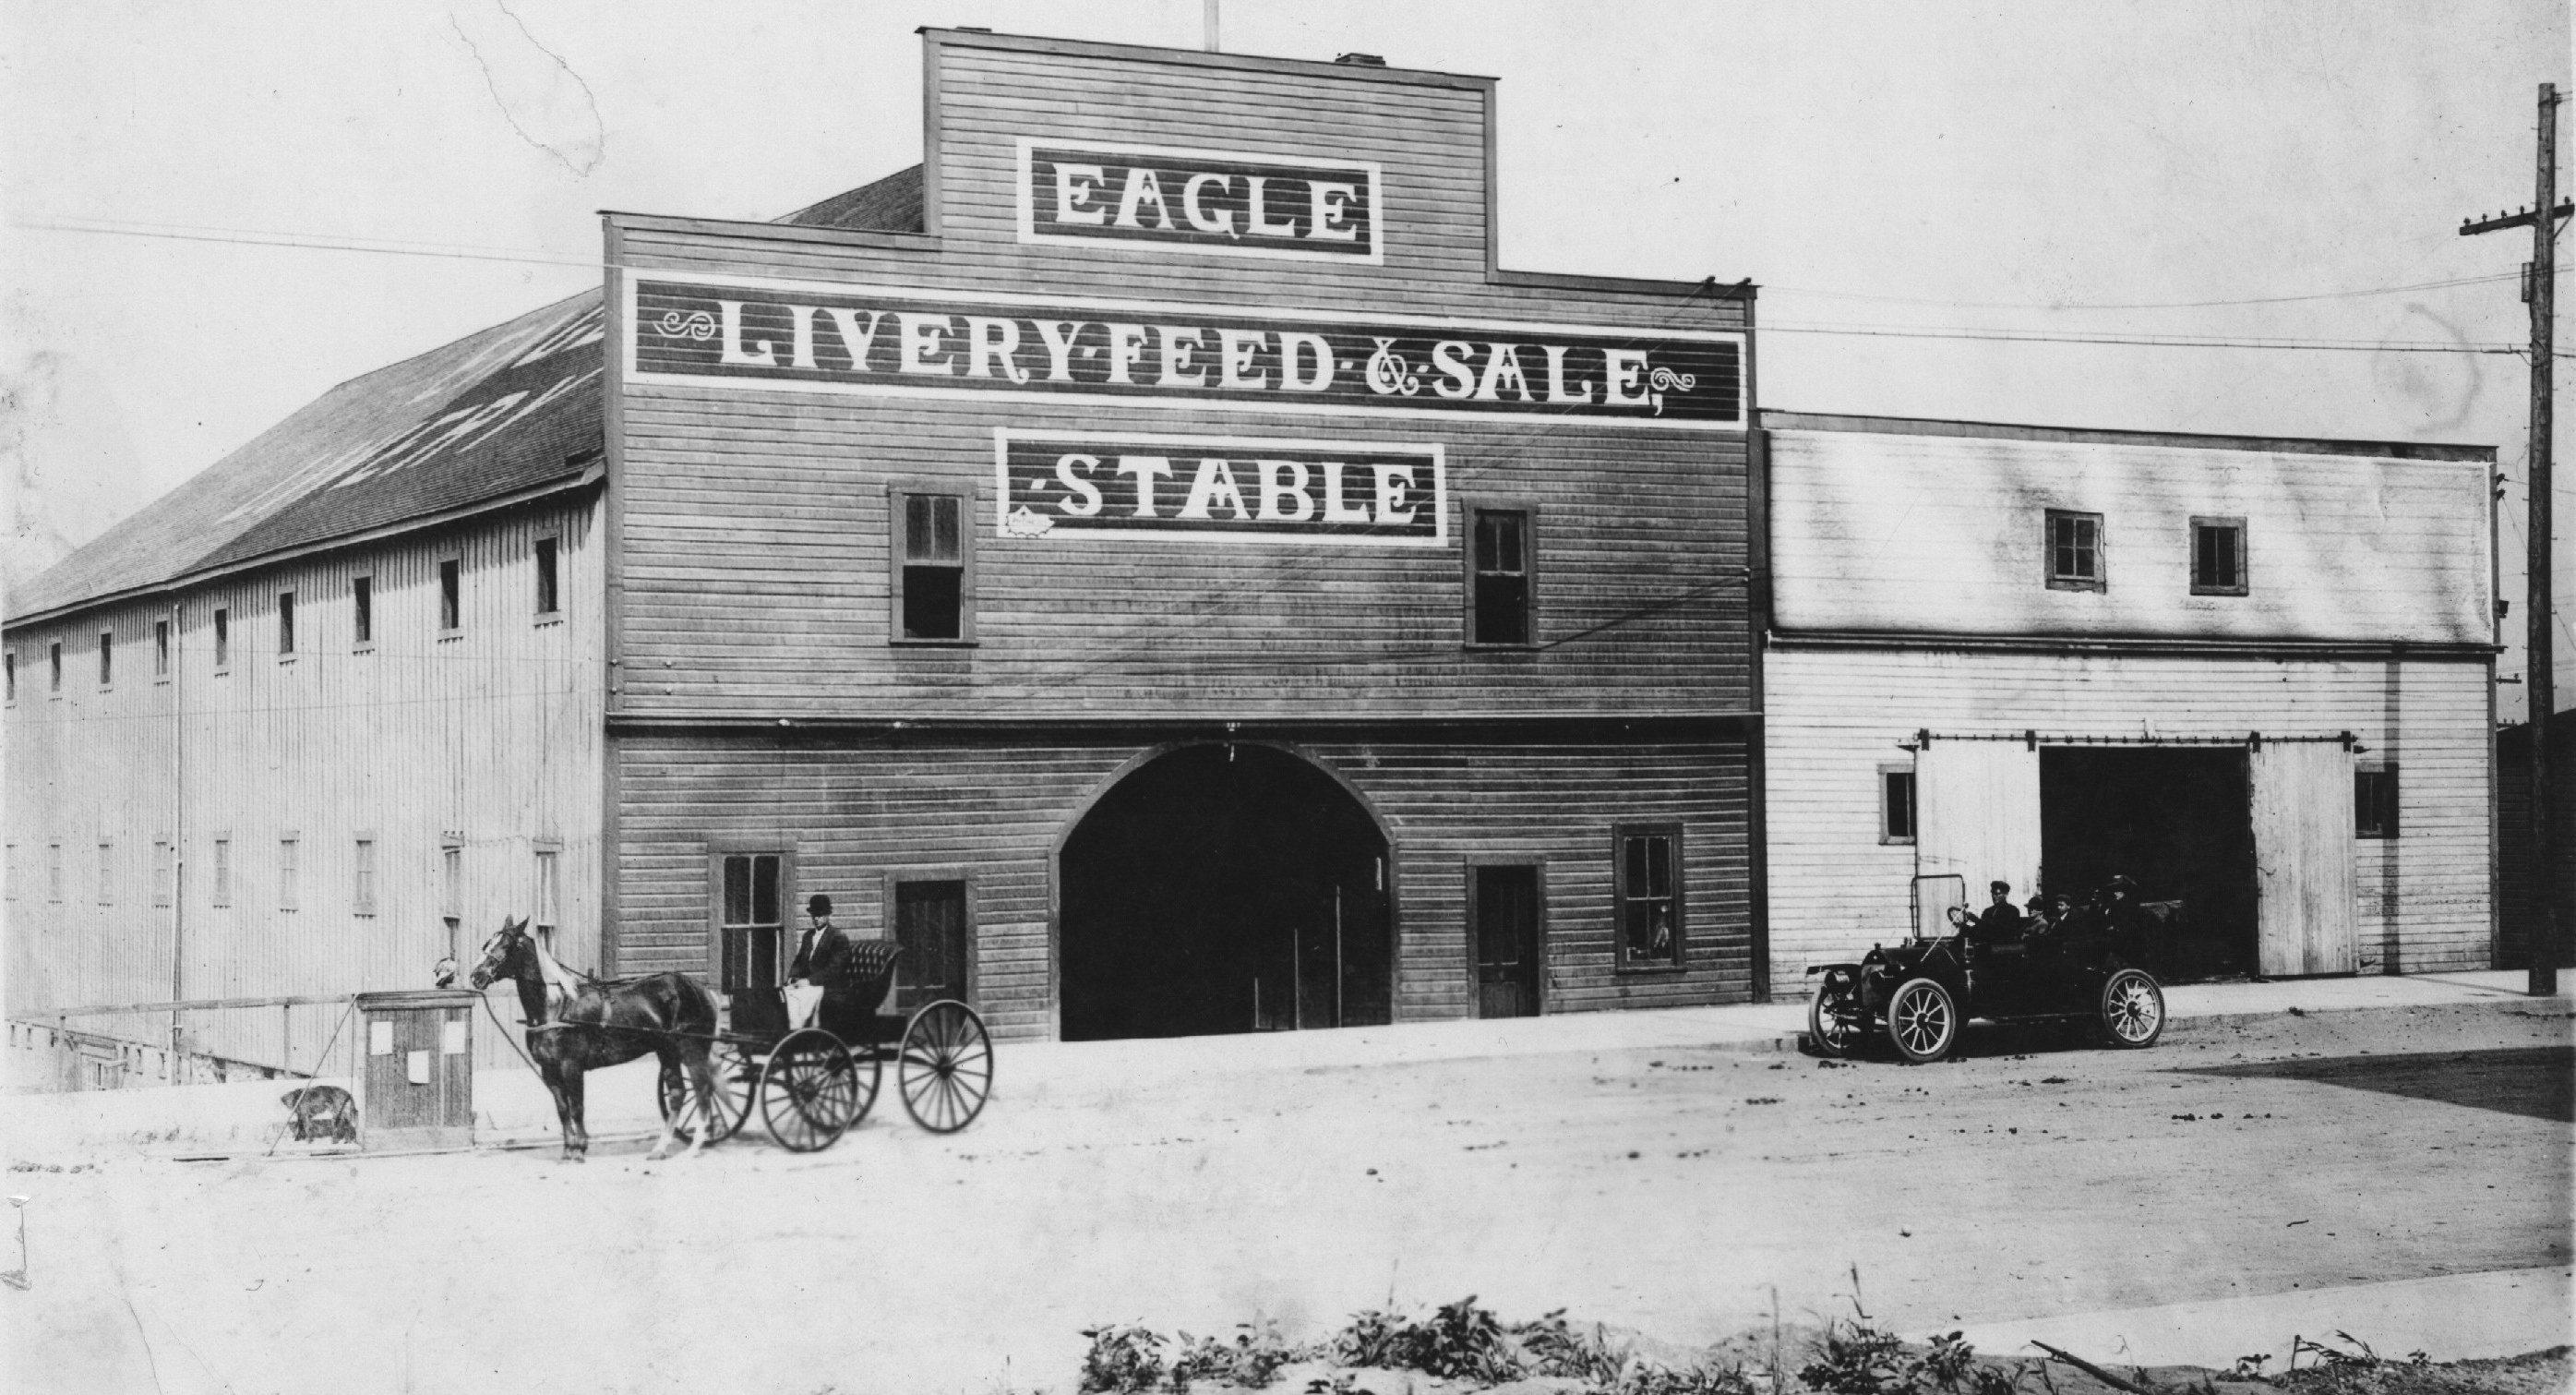 Eagle Livery Feed & Sale Stable building as it appeared before 1910.  It was founded in 1903.. Photo also shows someone in a horse drawn carriage and an automobile on the street in front.